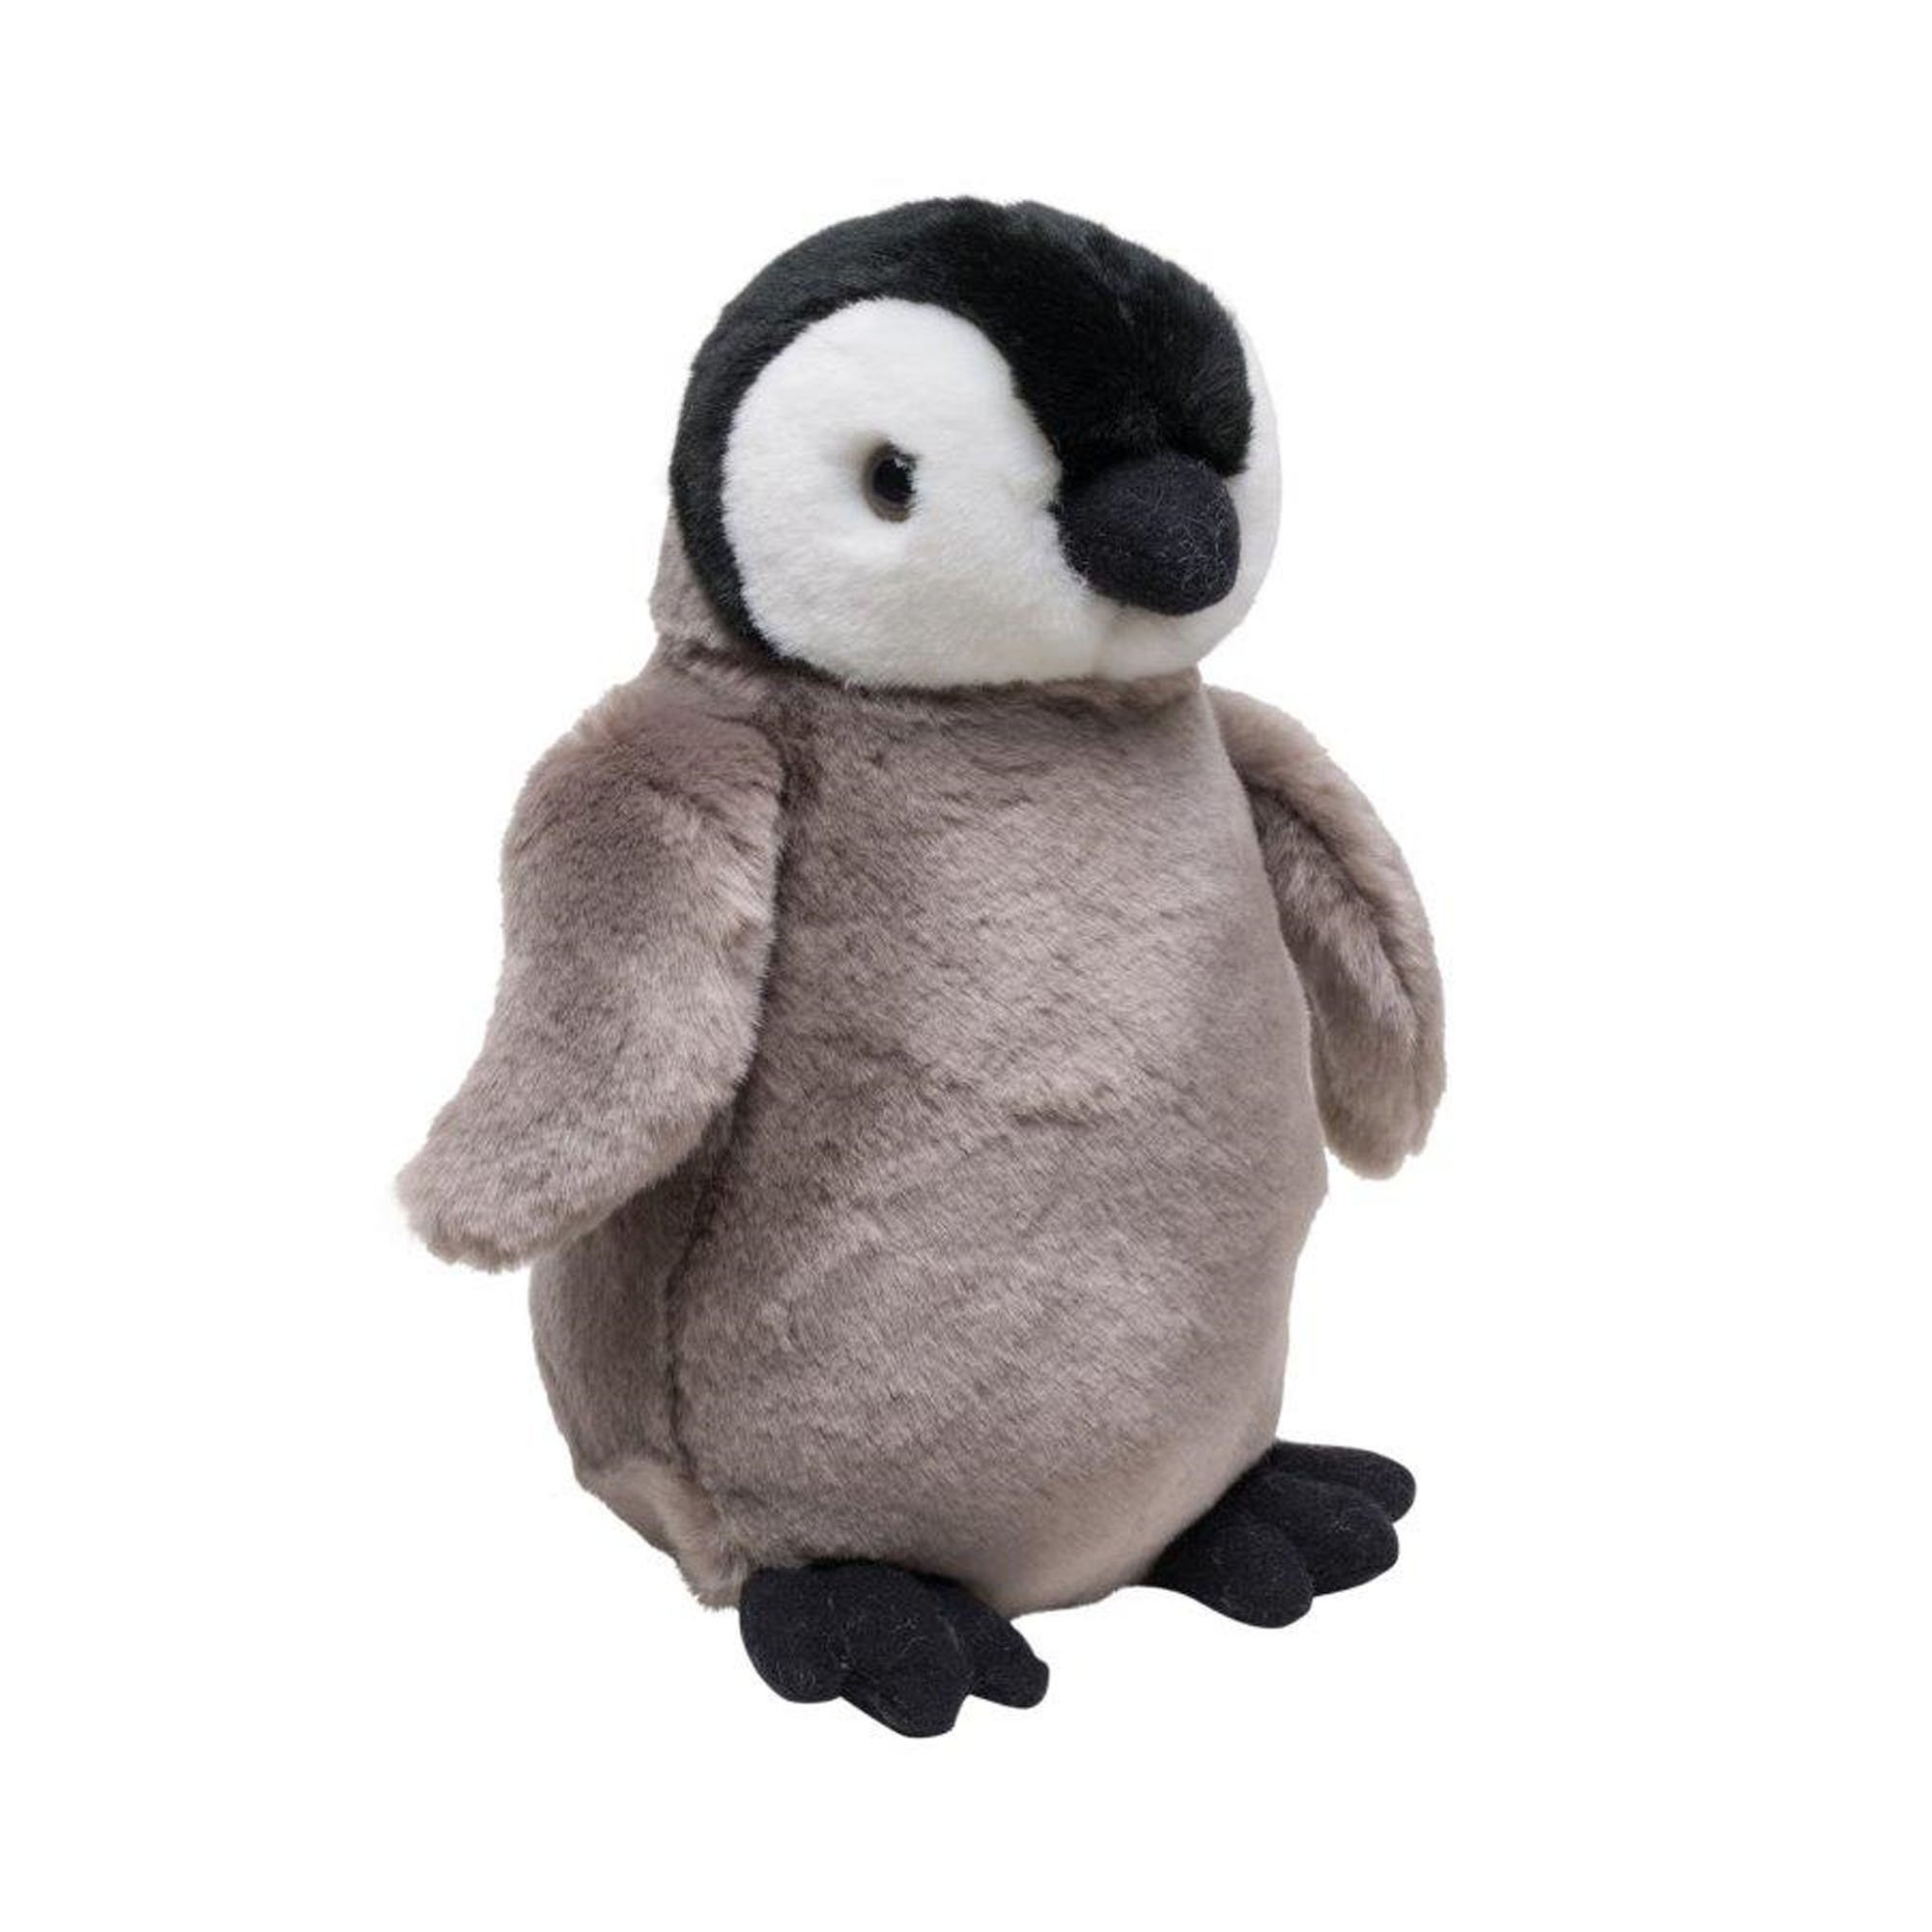 Emperor penguin chick soft toy